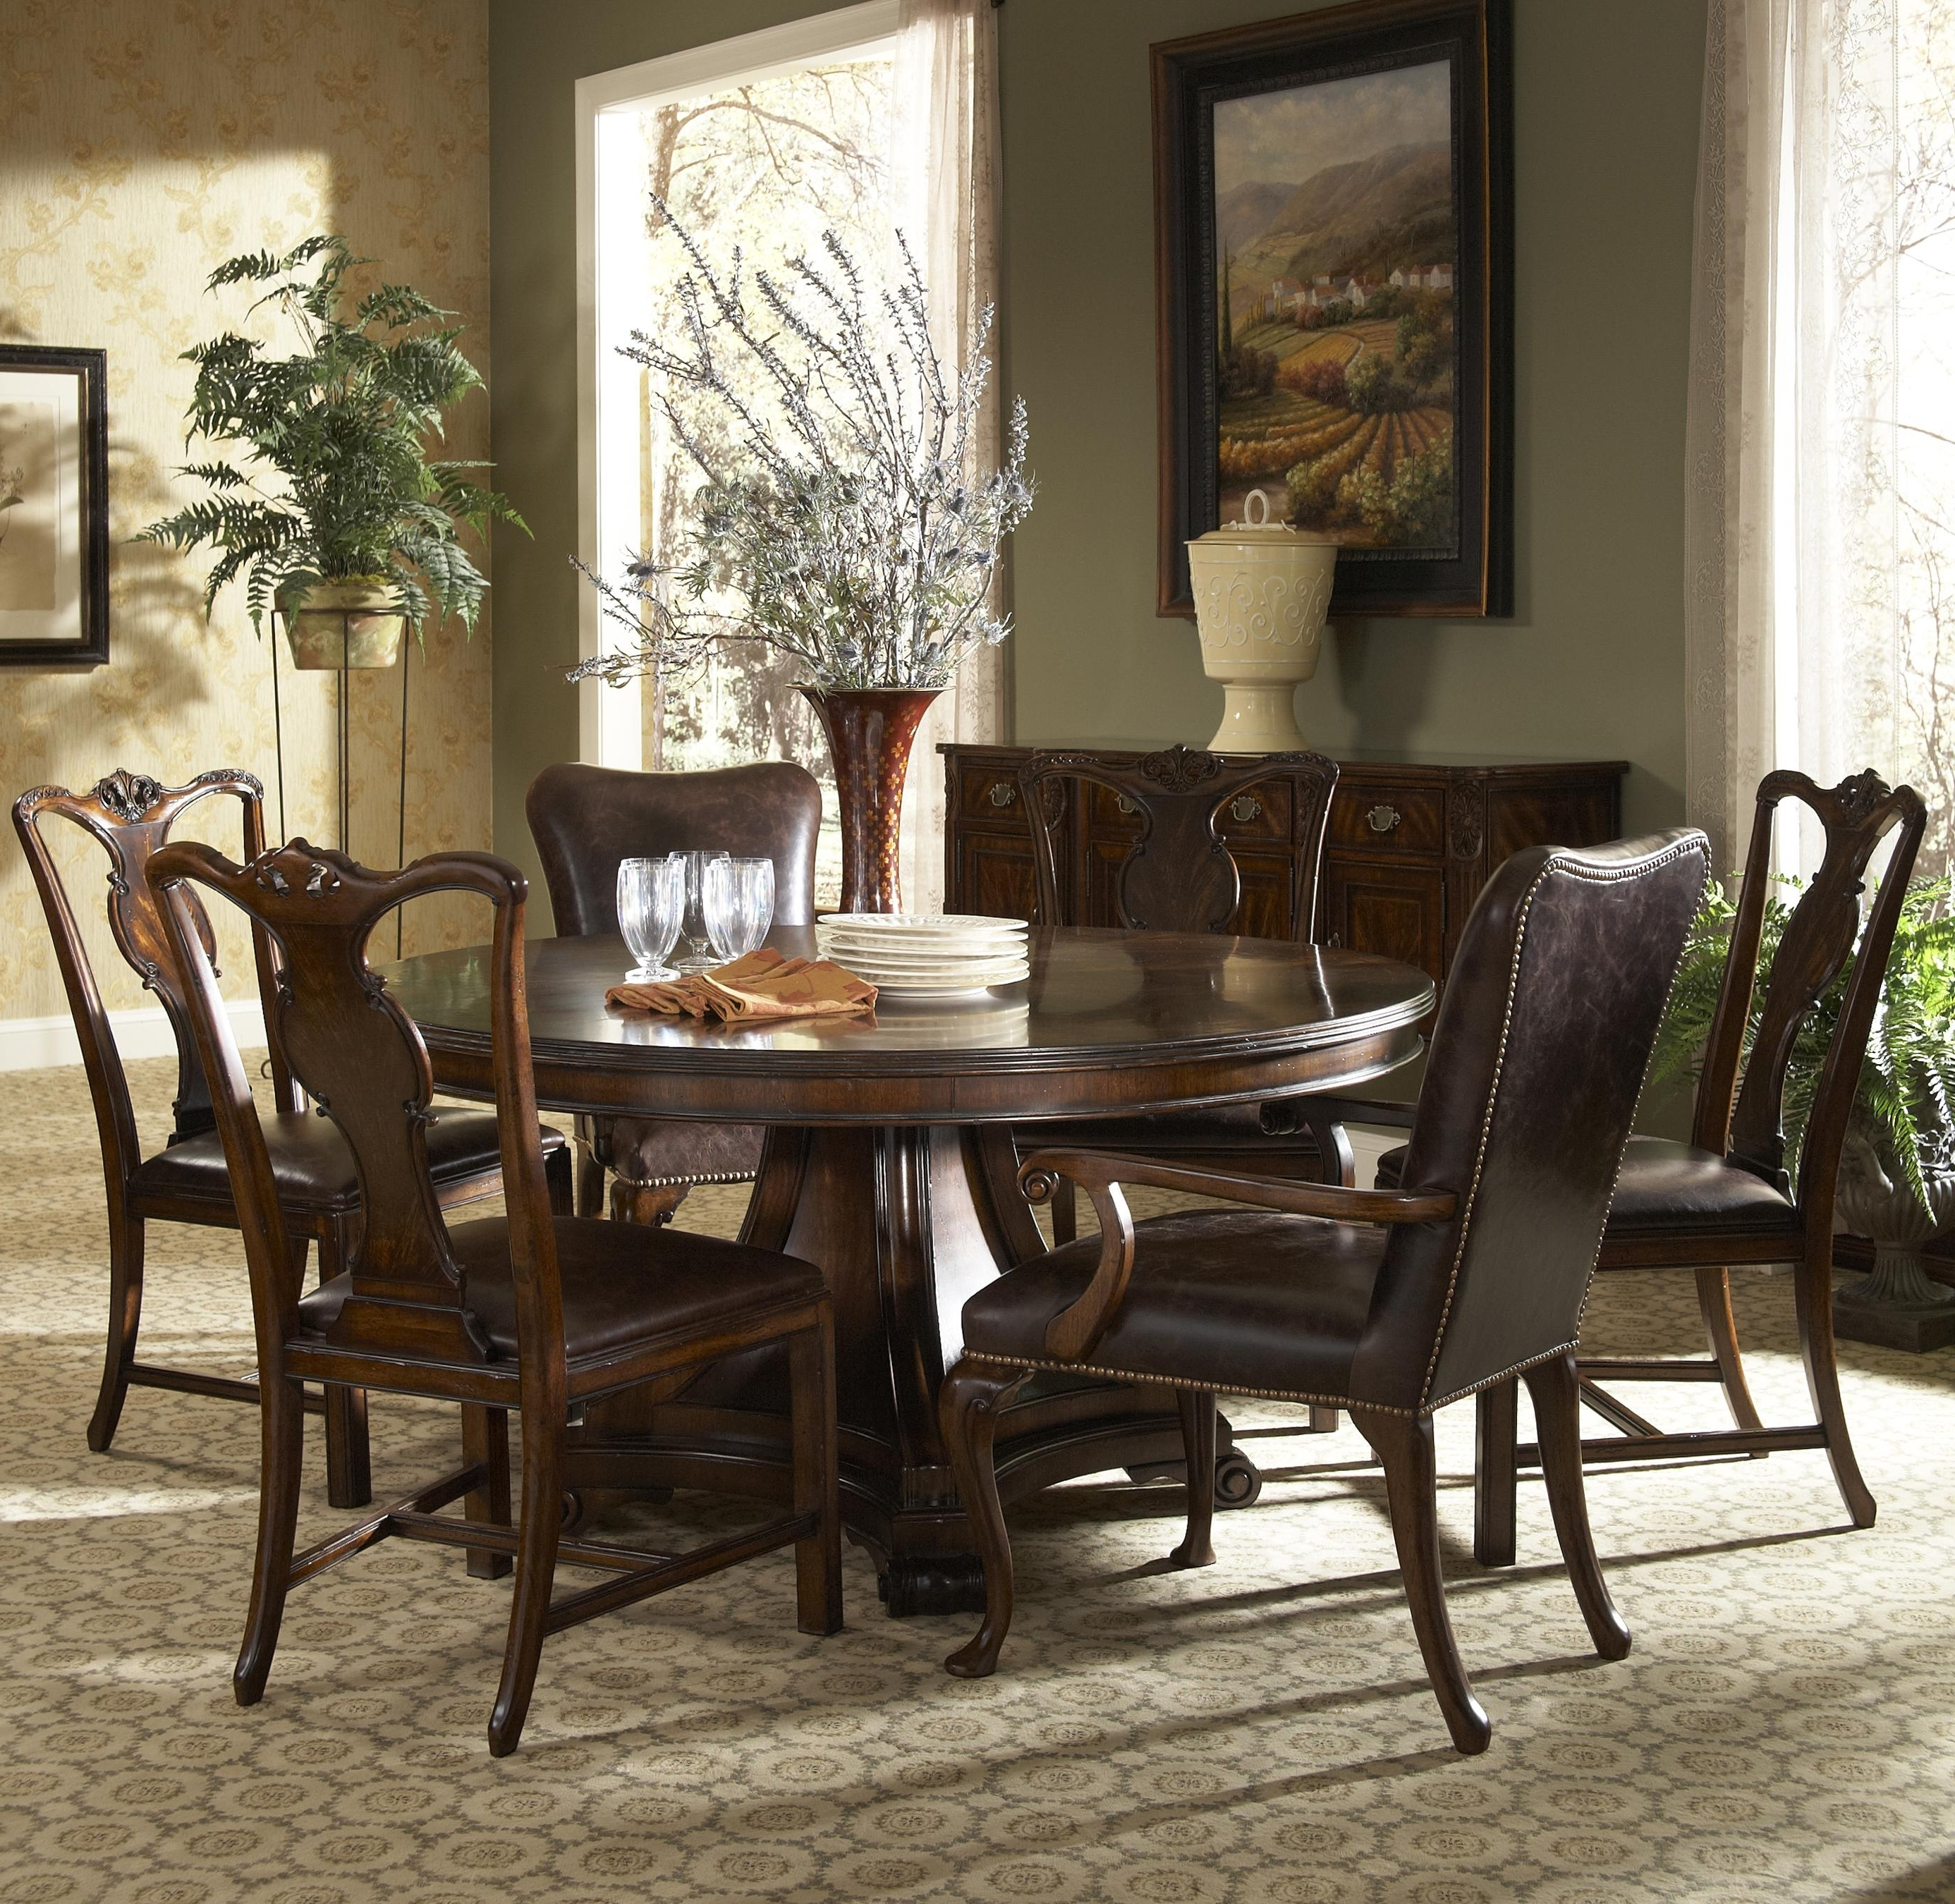 Parquet 7 Piece Dining Sets Throughout Trendy 7 Piece Round Dining Table With Splat Back Dining Side Chairs And (Gallery 10 of 25)